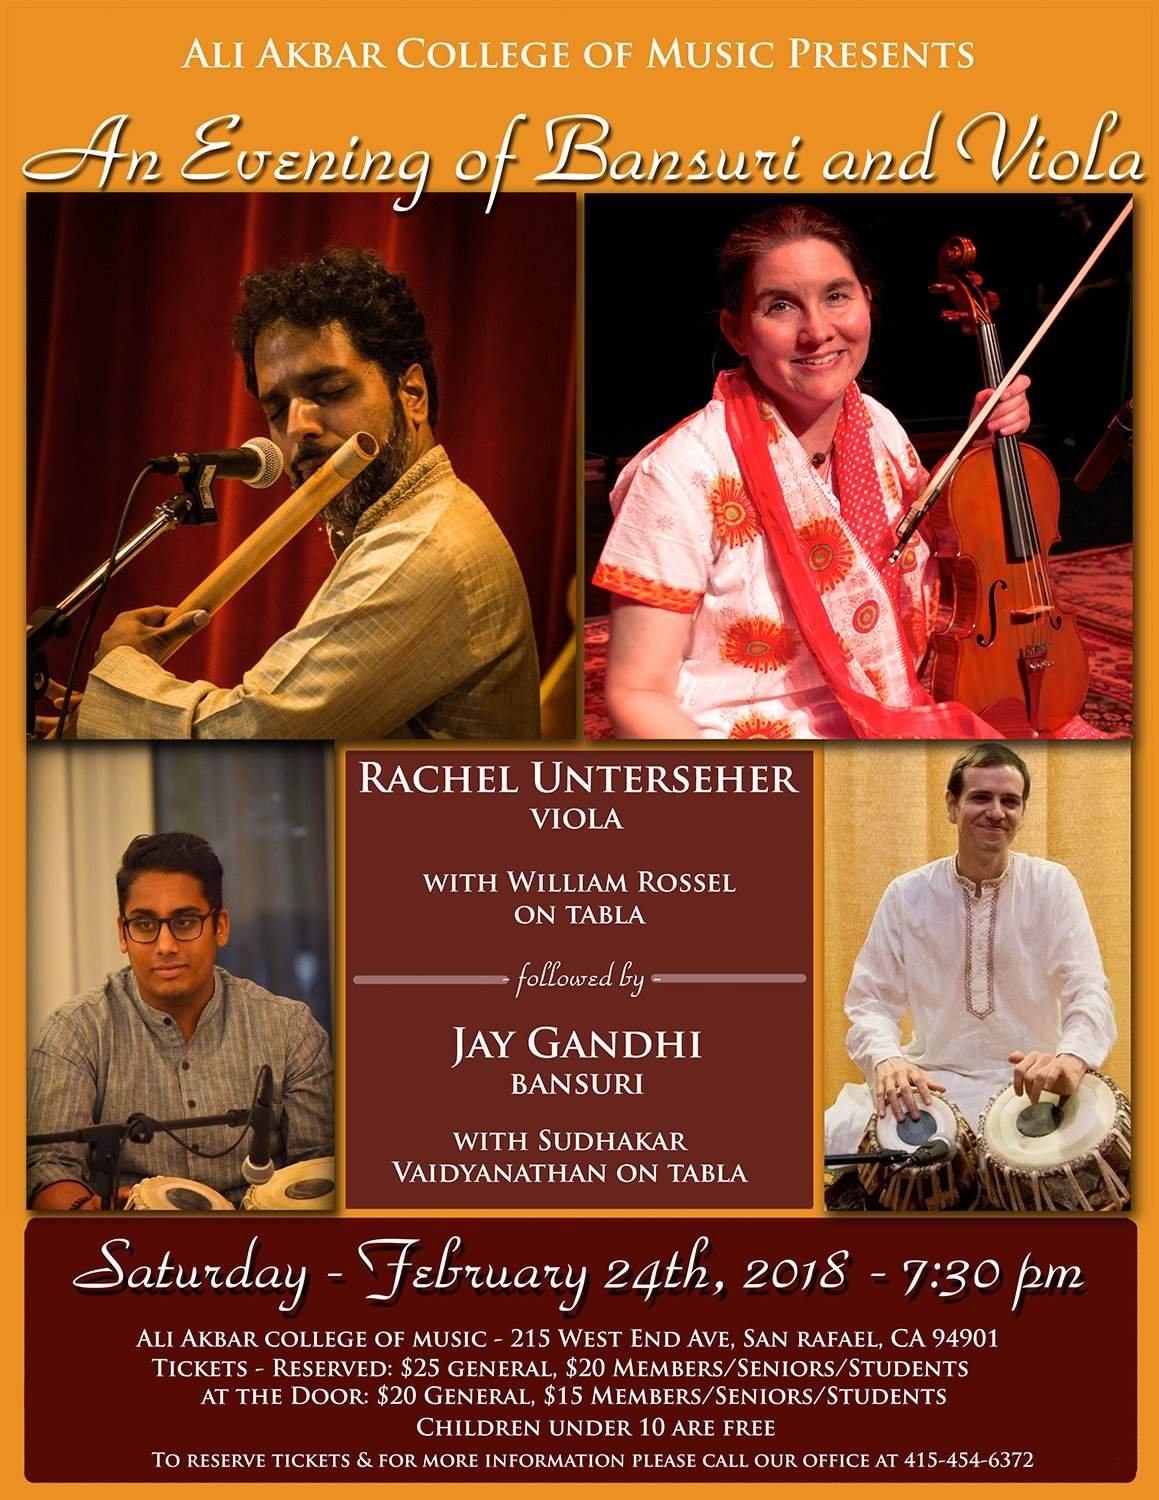 Concert with Nilan Chaudhuri January 13, 2018